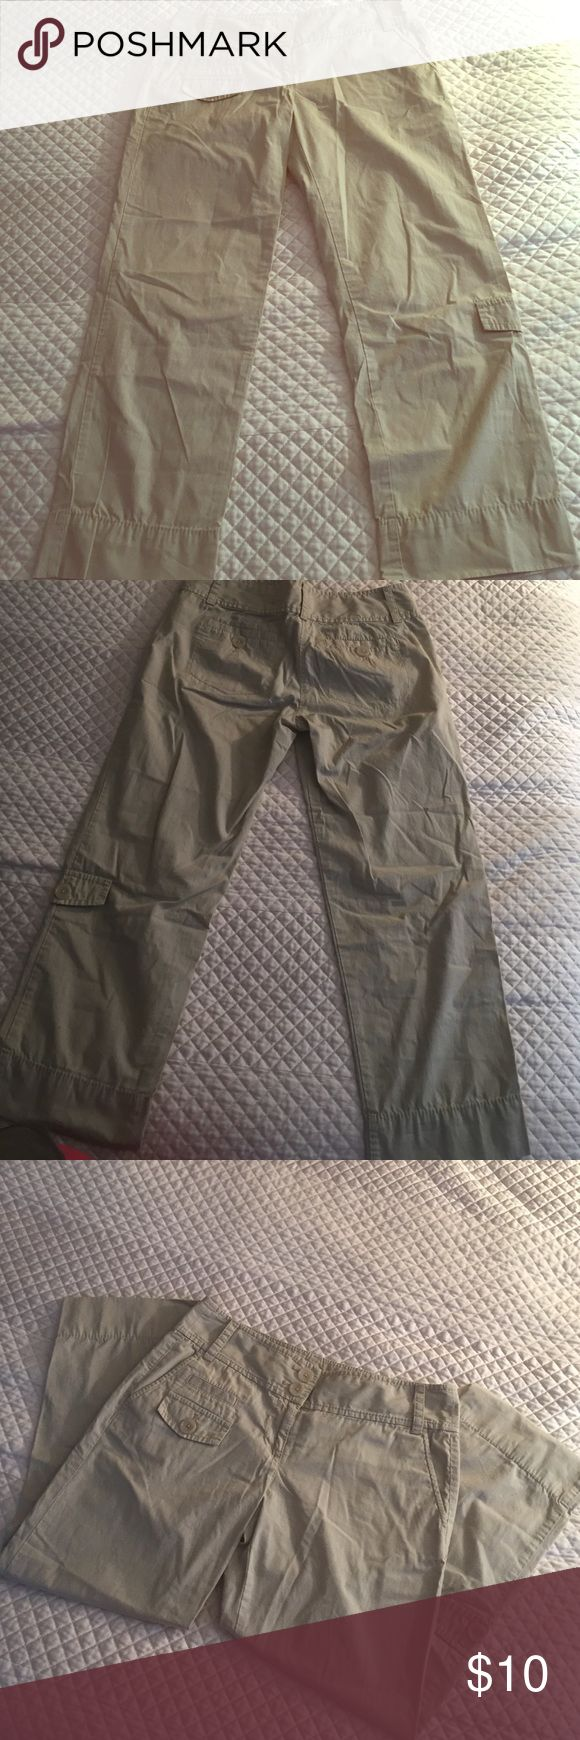 LOFT brand khaki Capri Lightweight khaki capri's from LOFT. Size 0. Hardly worn- in excellent condition. I got them for a safari in Africa and they were perfect for what I needed! LOFT Pants Capris